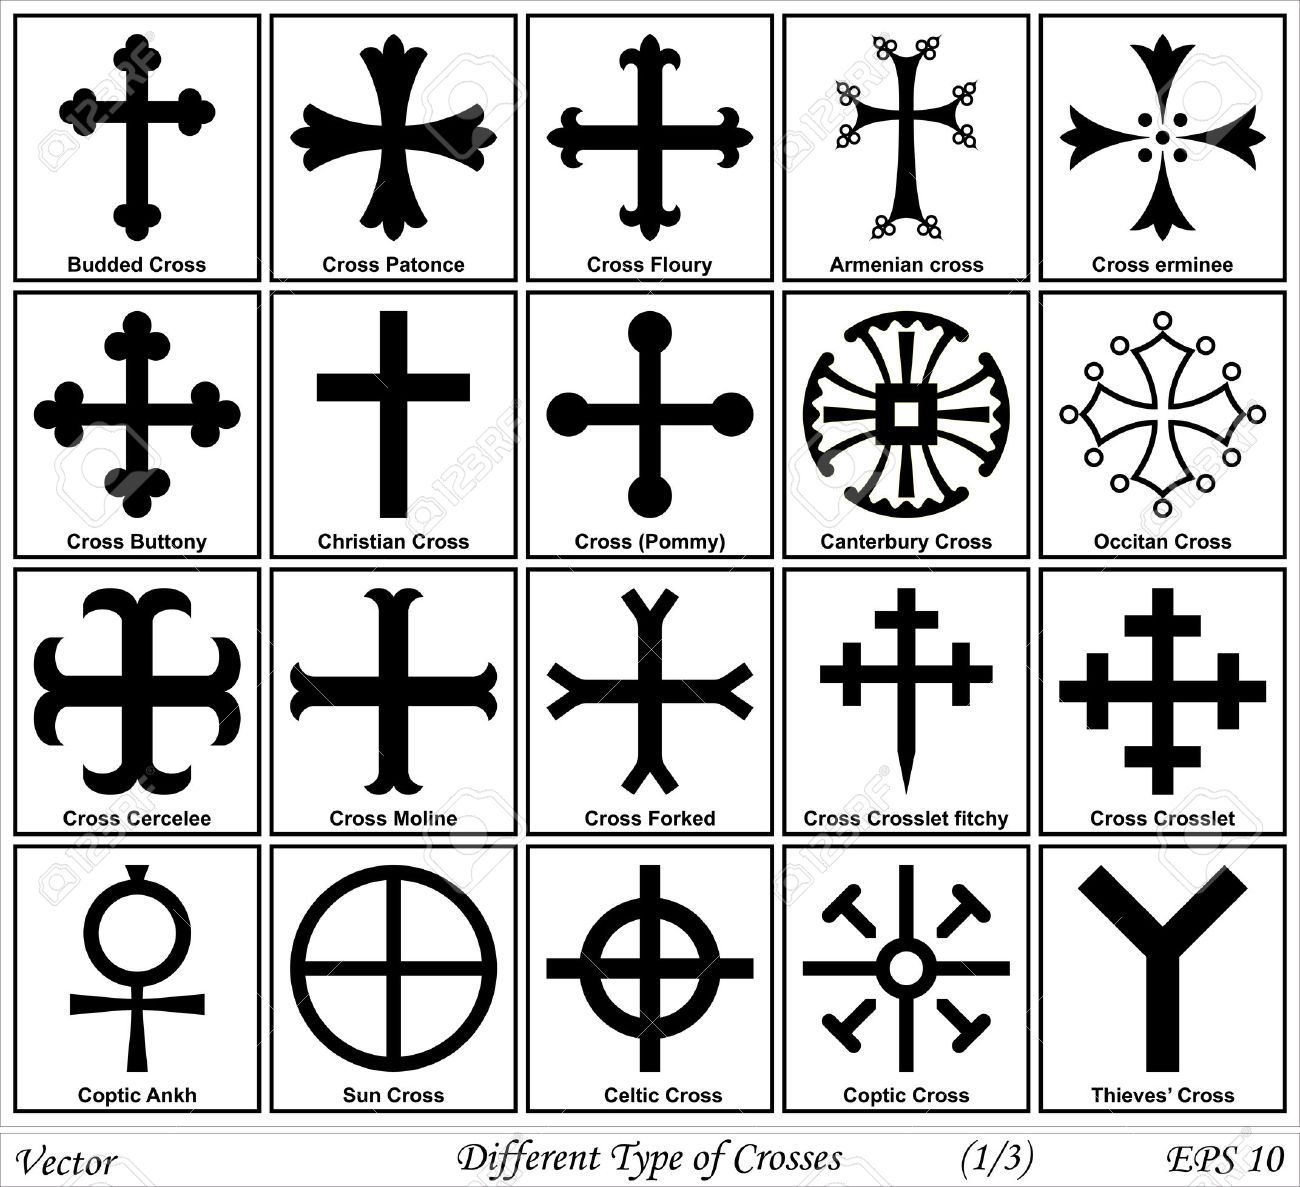 Different types of crosses and their meanings shapes of crosses different types of crosses and their meanings shapes of crosses google search pagan symbolsreligious buycottarizona